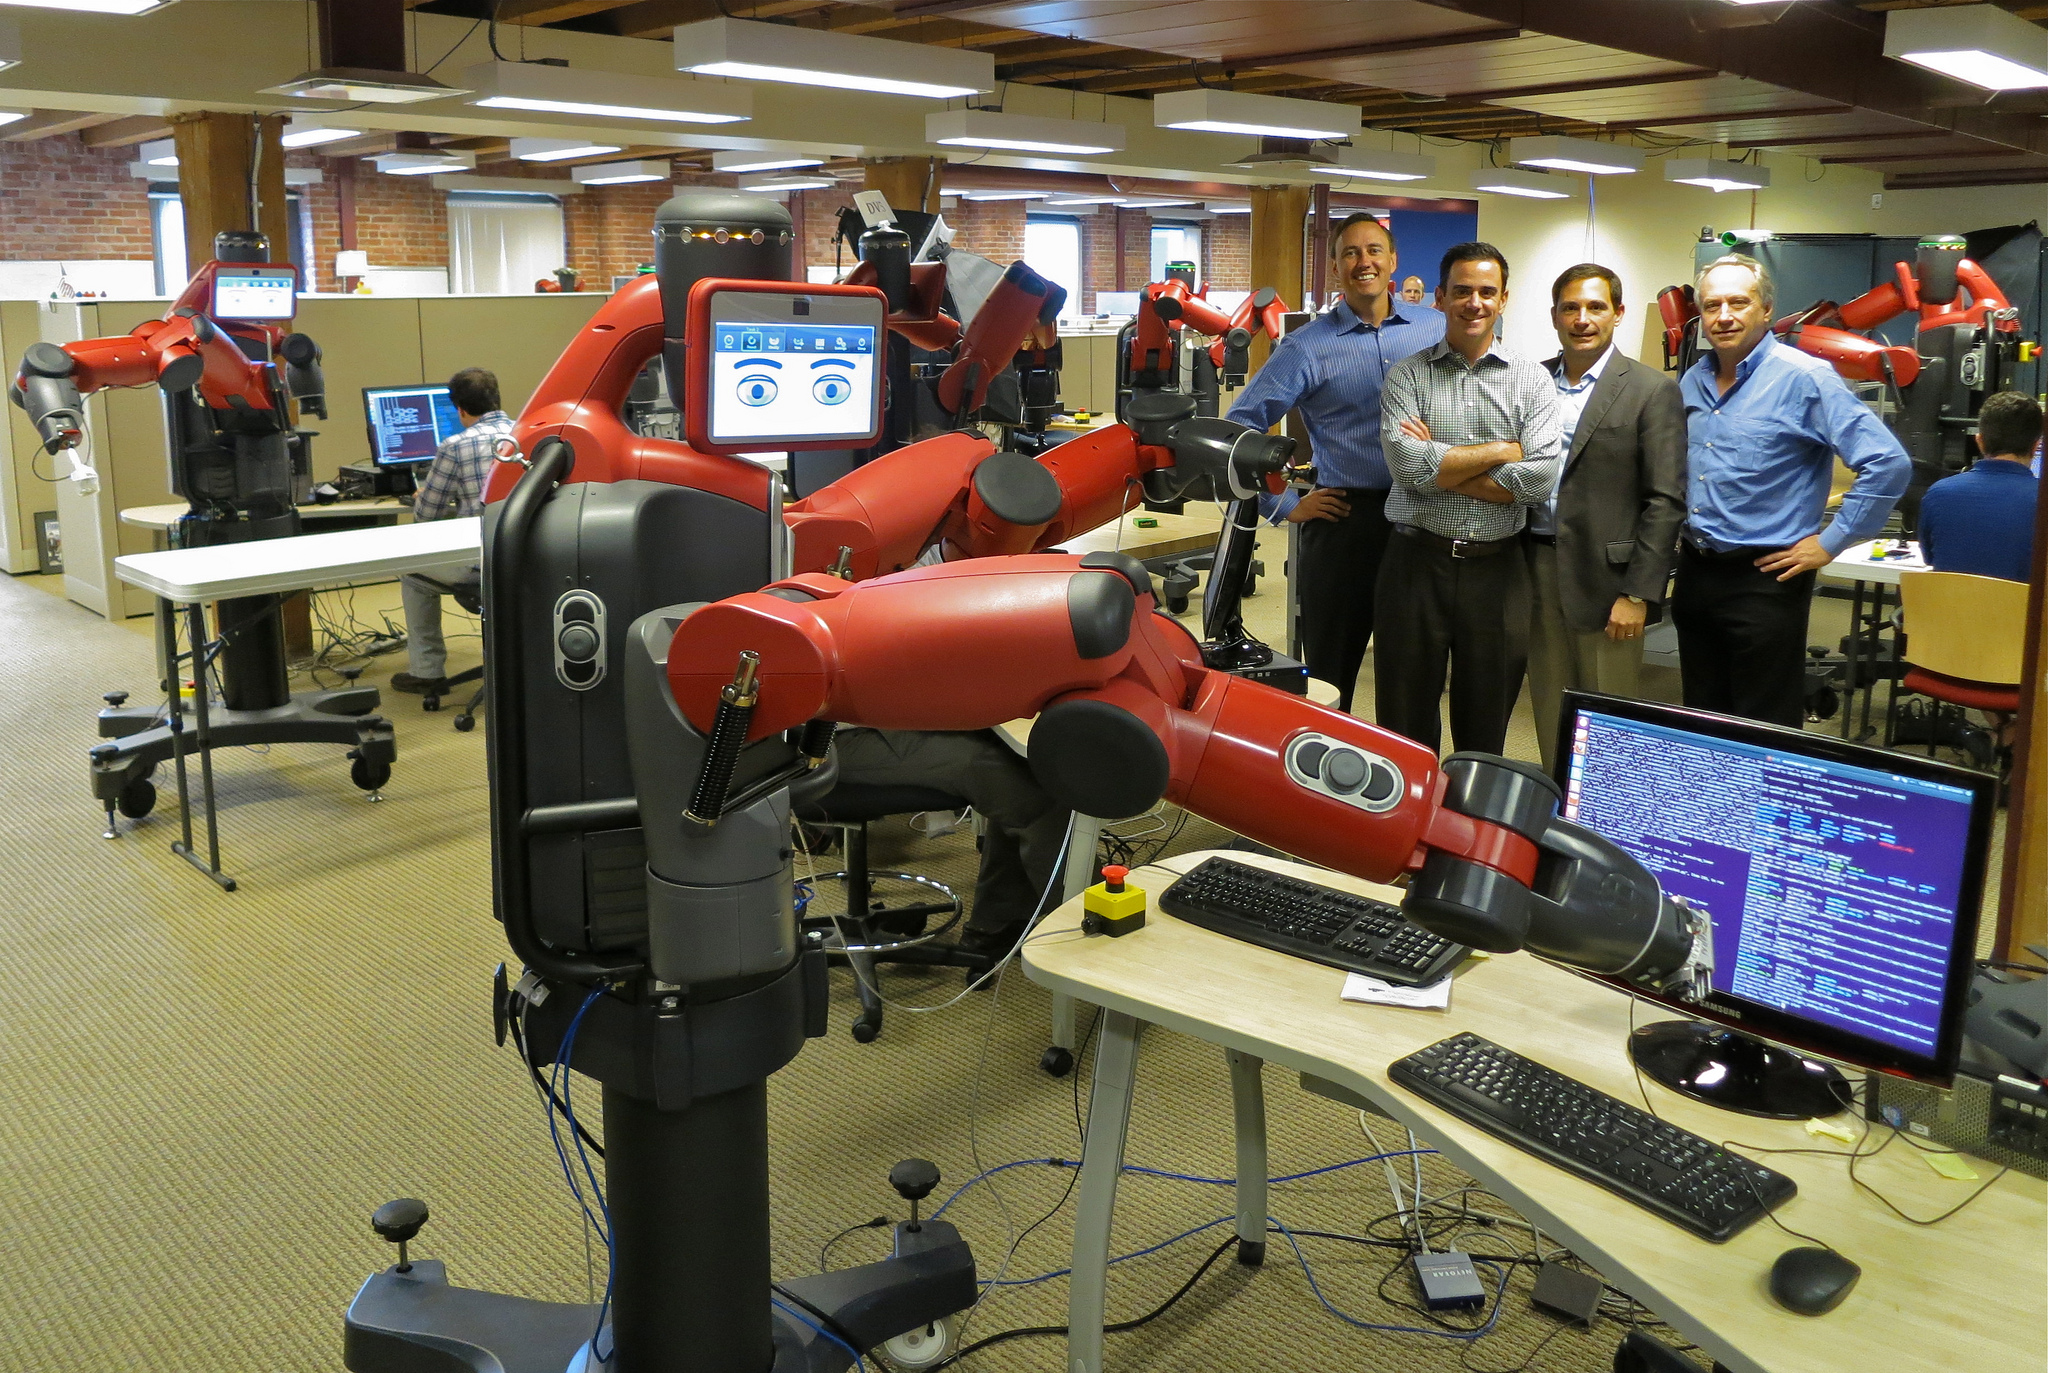 """Rethink Robotics' Baxter, which the company markets as a """"safe, flexible, affordable alternative to outsourced labor and fixed automation."""""""